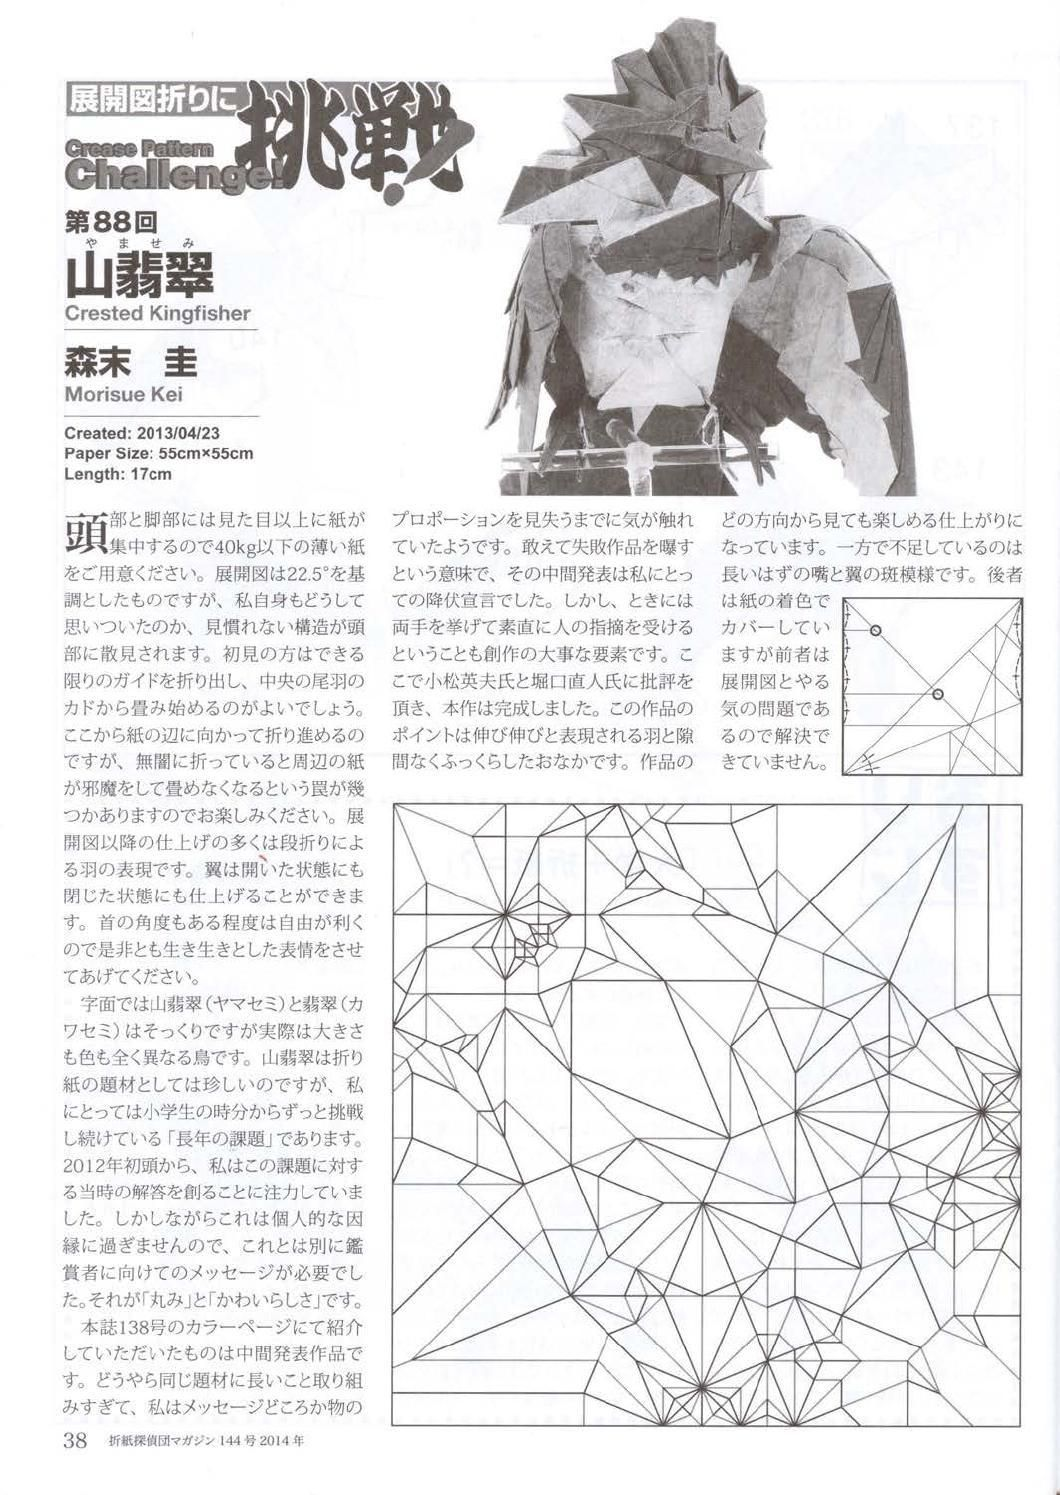 Satoshi Kamiya Diagram Two Way Wiring For Light Switch Origami Tanteidan Magazine 144 Crease Patterns